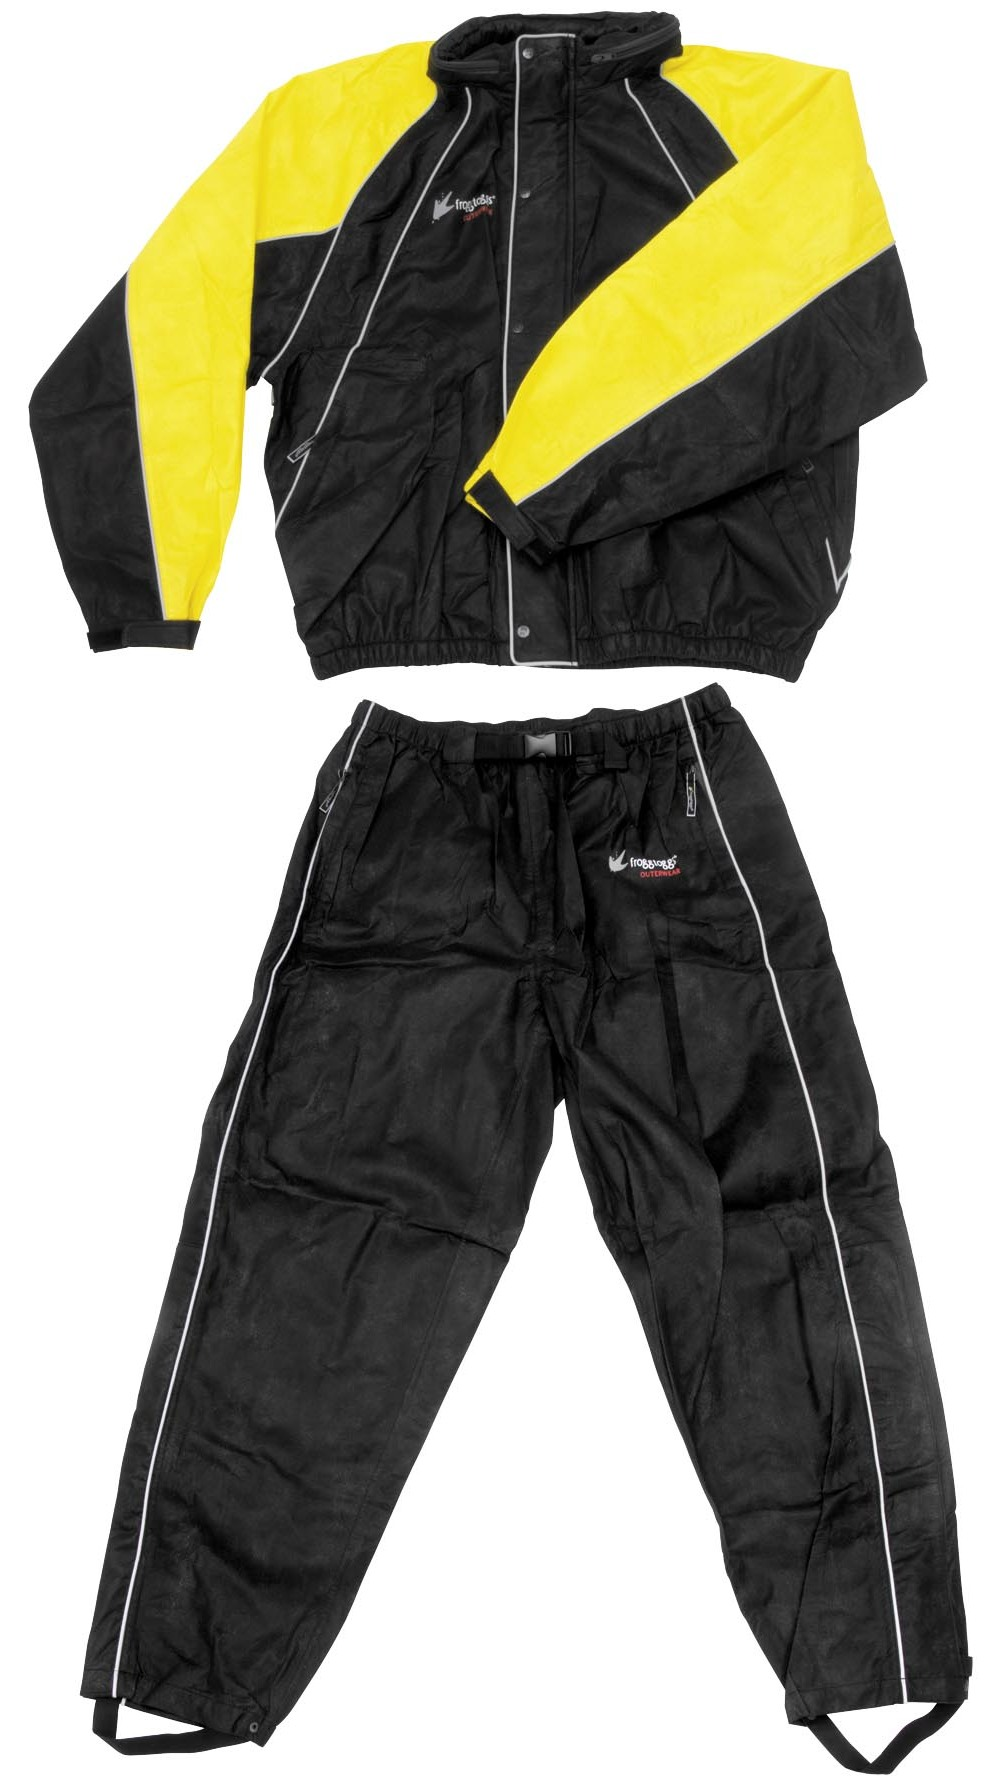 Frogg Toggs Hogg Togg Rainsuit by Frogg Toggs